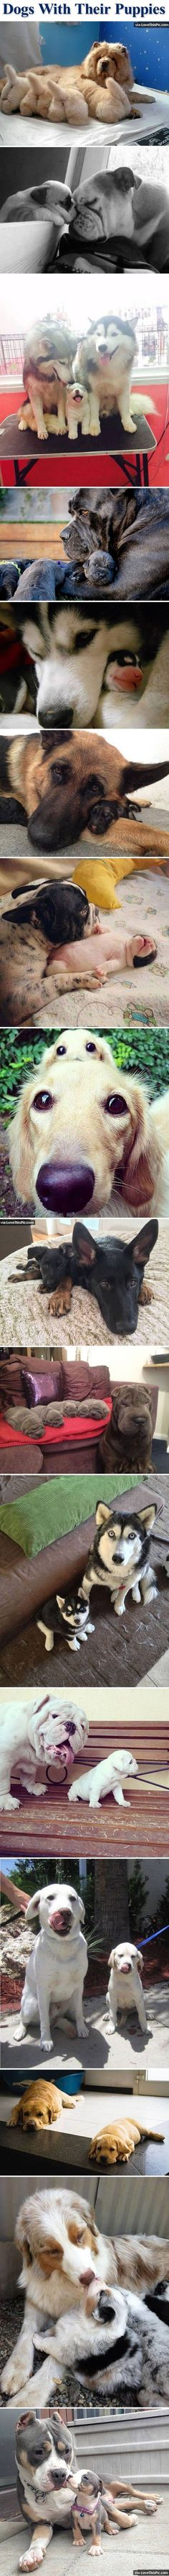 Dogs With Their Puppies cute animals dogs adorable dog puppy animal pets funny animals funny pets funny dogs: